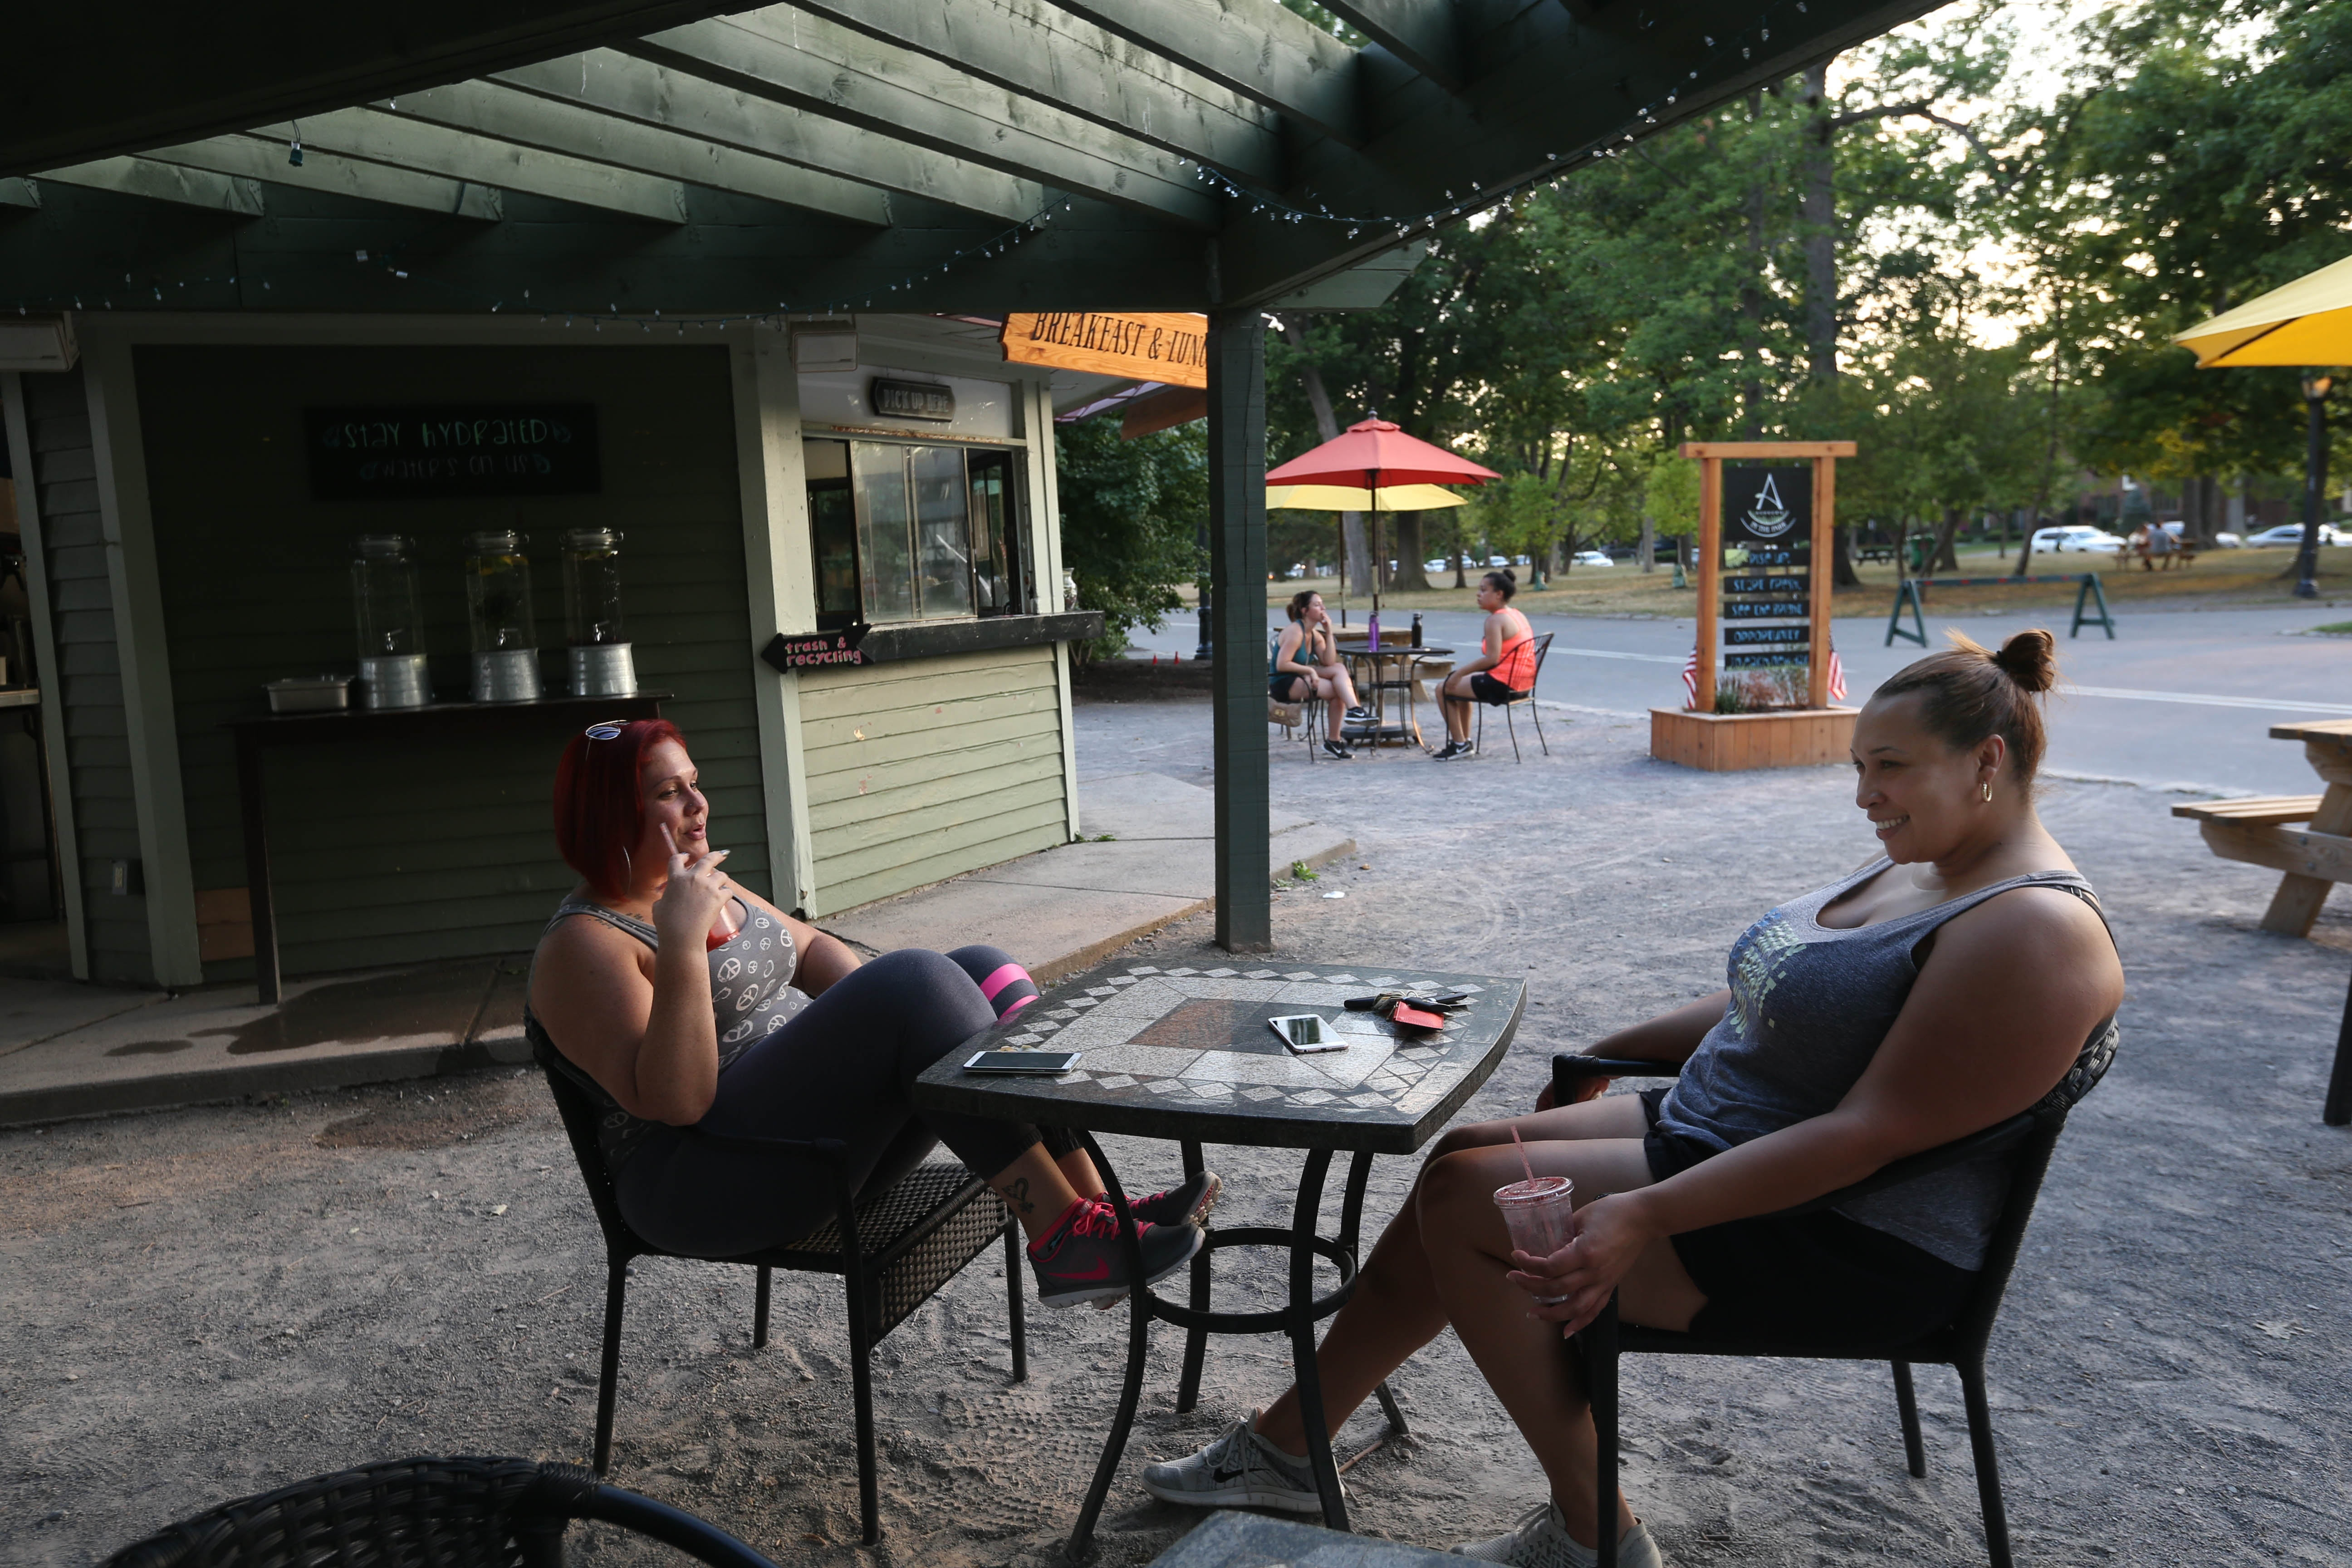 The Meadow at Delaware Park in Buffalo is abuzz with activity seven days a week throughout the year. Photos on a typical day at the beloved Olmsted park, Thursday, Aug. 4, 2016. Ann Marie Hernandez, left, and Natalie Gates, of Kenmore, have some smoothies from Ashker's in the Park after their walk. (Sharon Cantillon/Buffalo News)